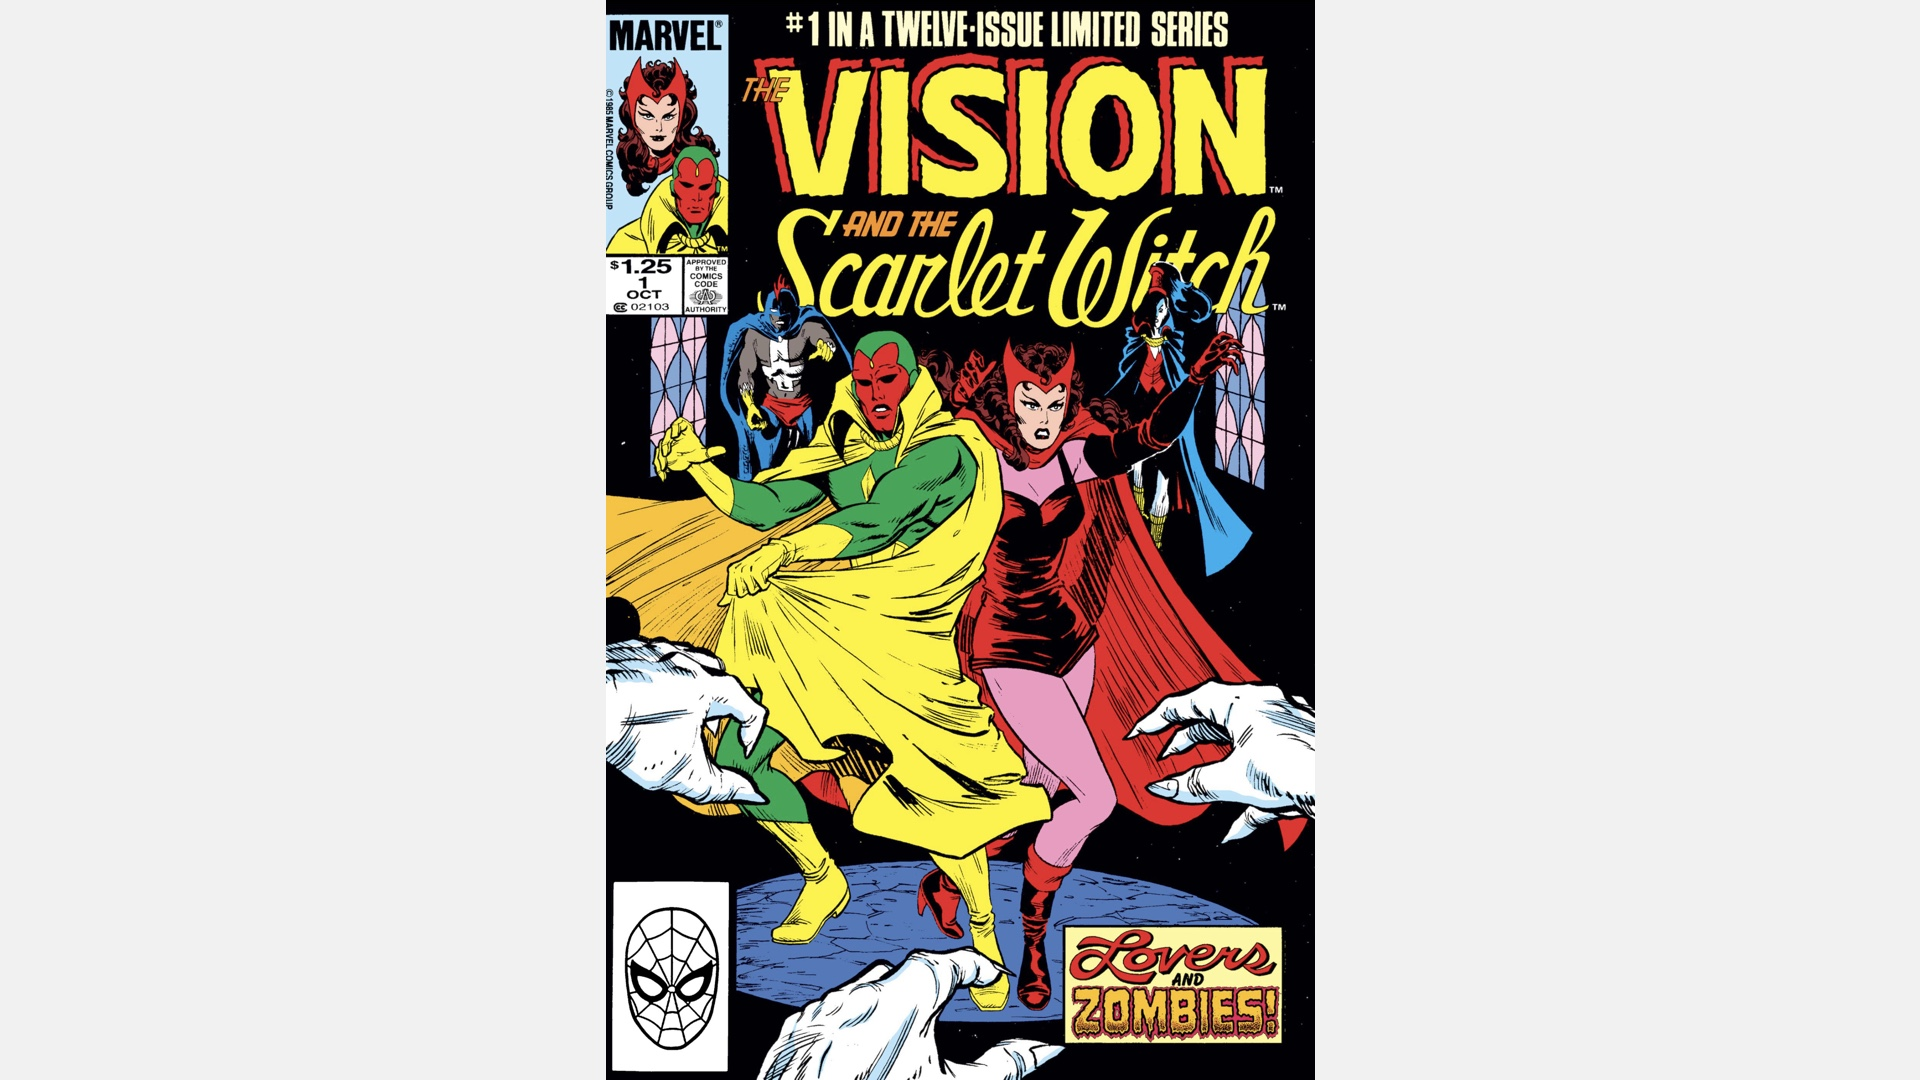 cover of Vision & Scarlet Witch Vol. 2 #1